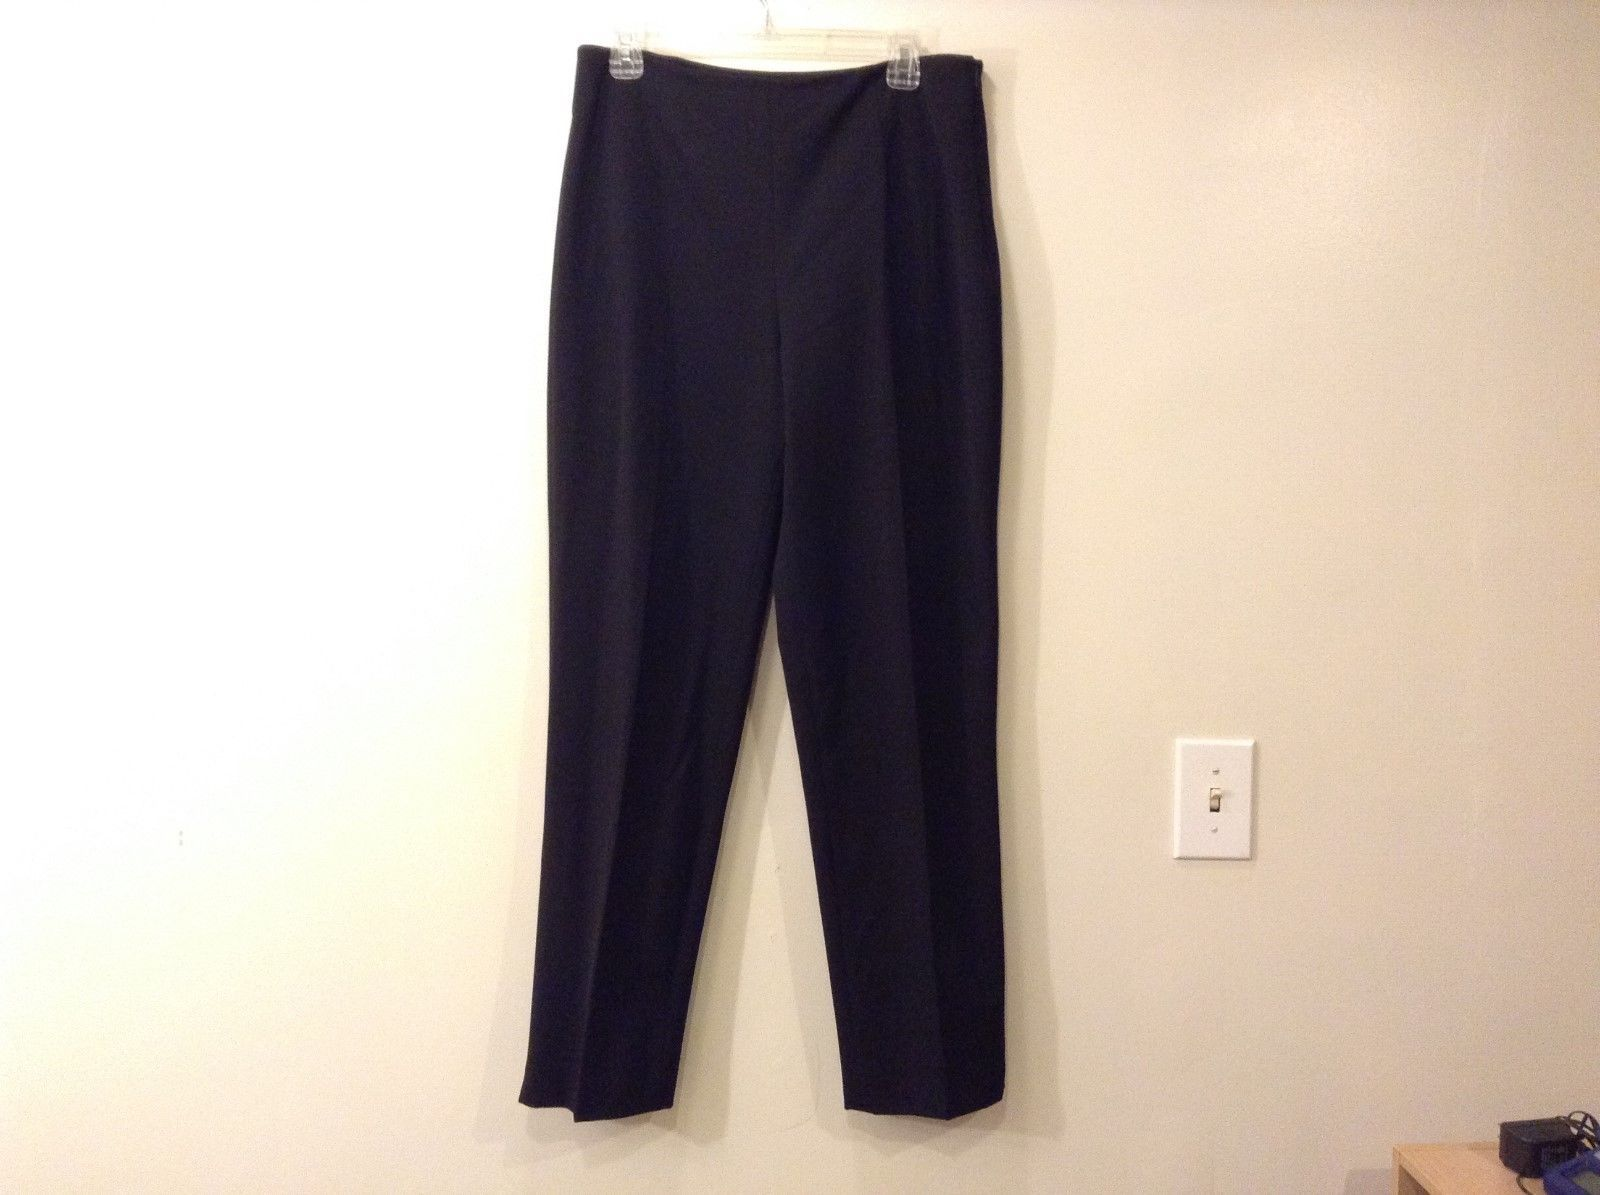 Ladies Saks Fifth Avenue Black Classic Pants Sz 12